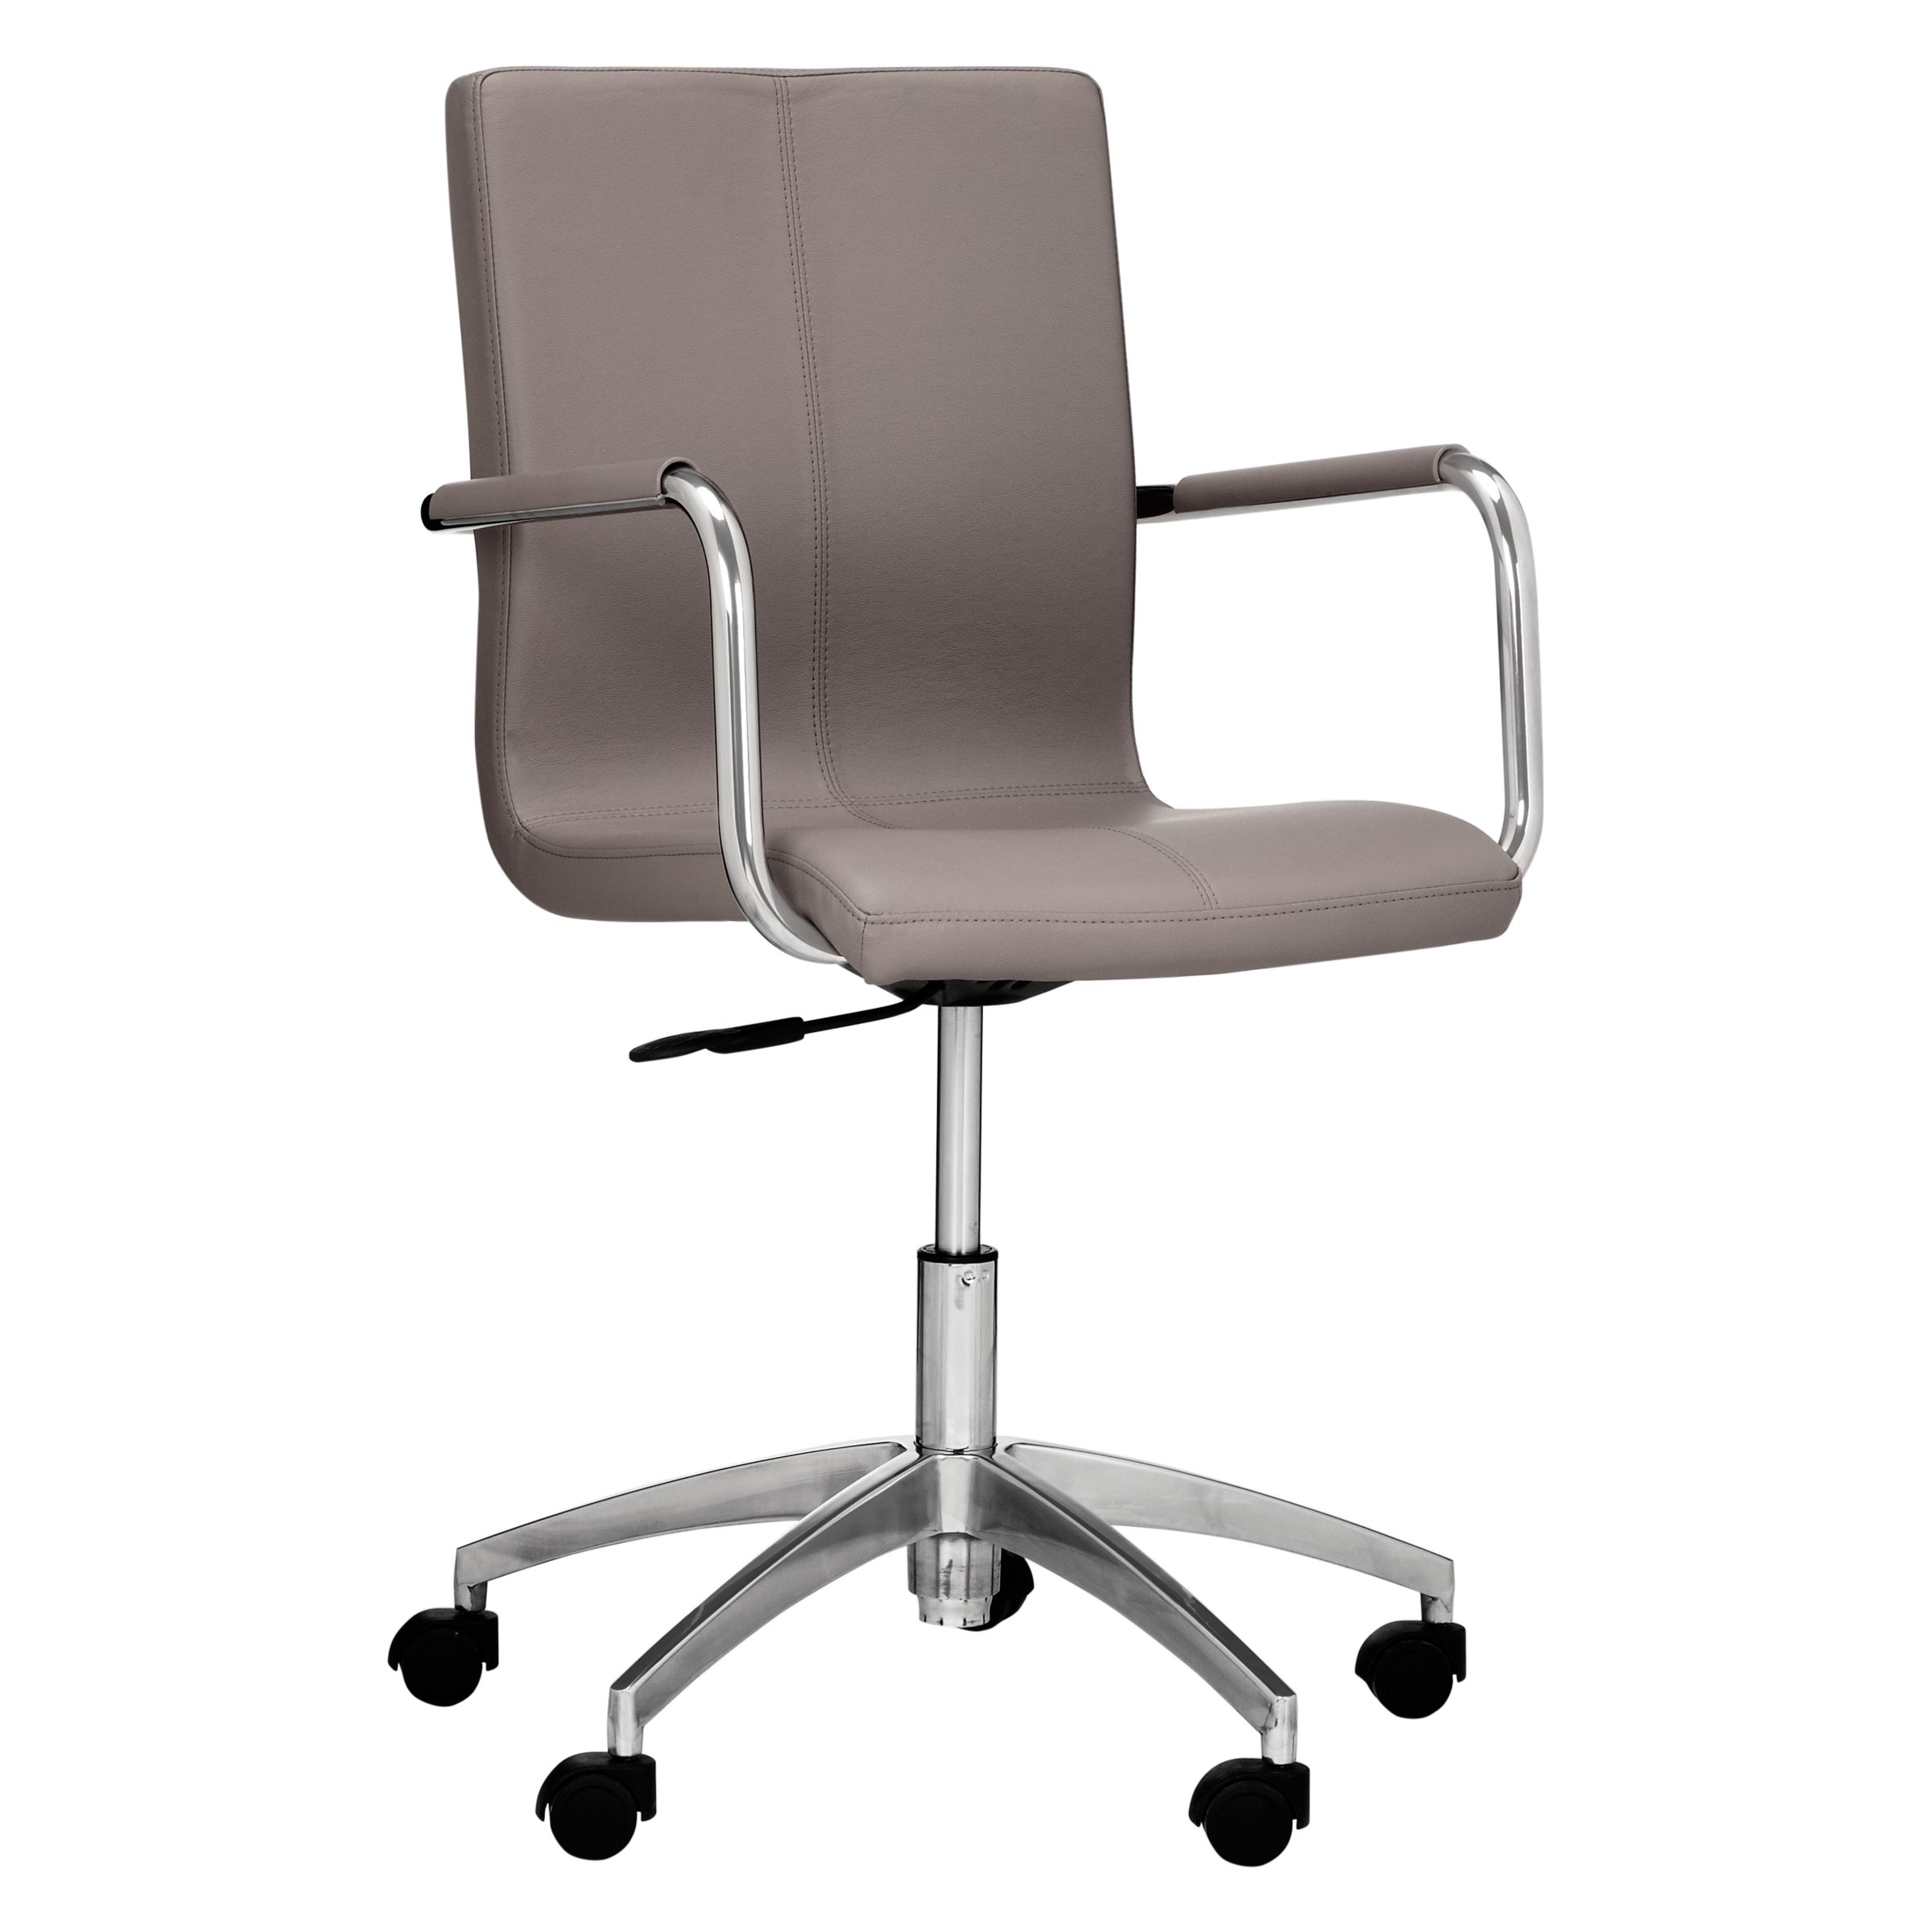 office chair online paul mccobb john lewis turin taupe at